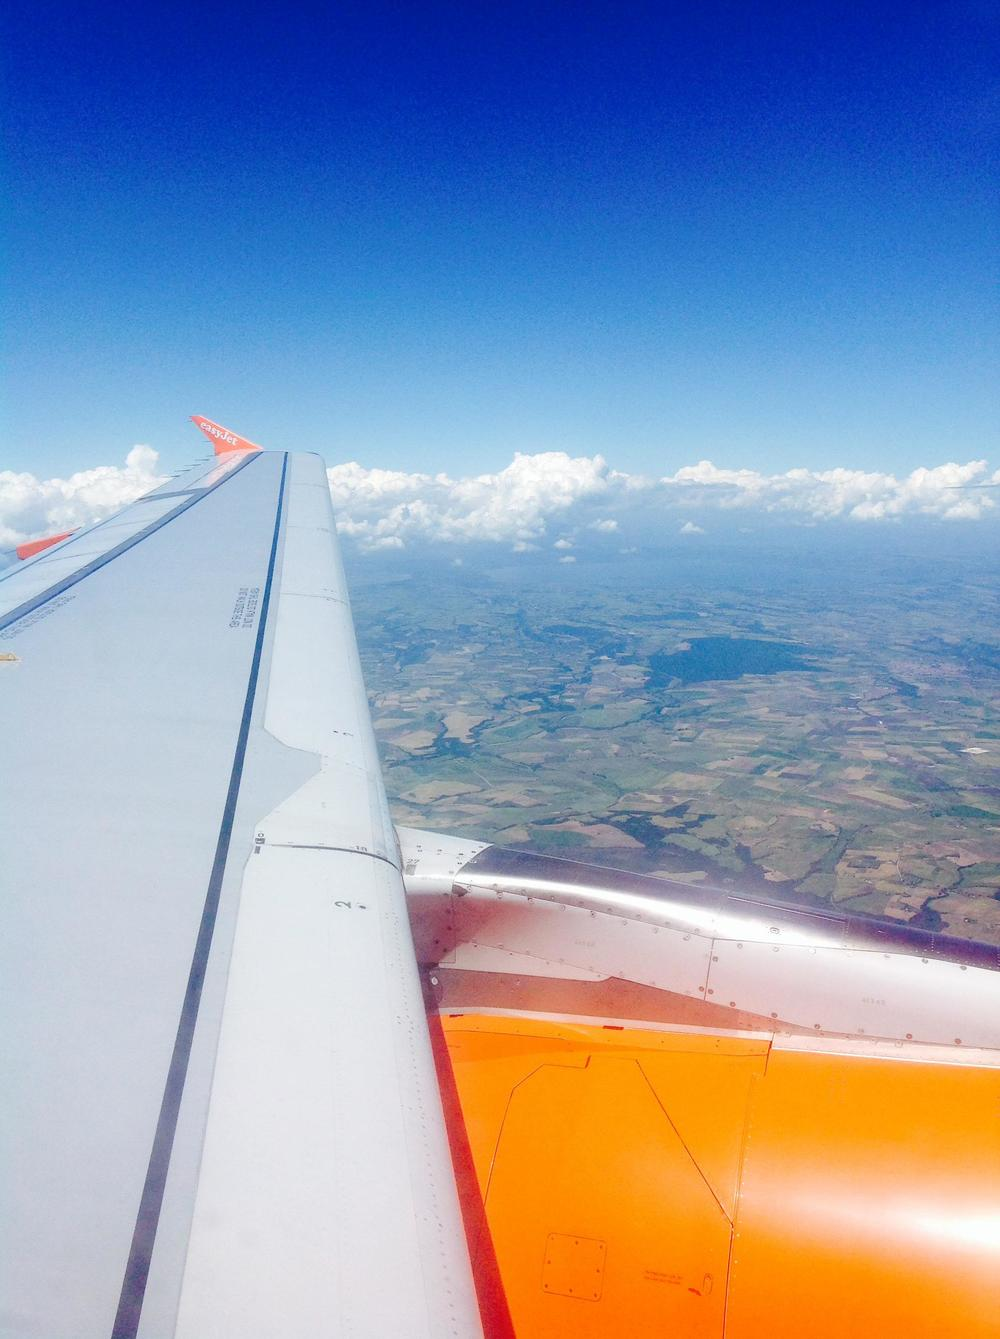 The view as we descend into Italy! And all the wing bolts that stayed in place- BONUS!